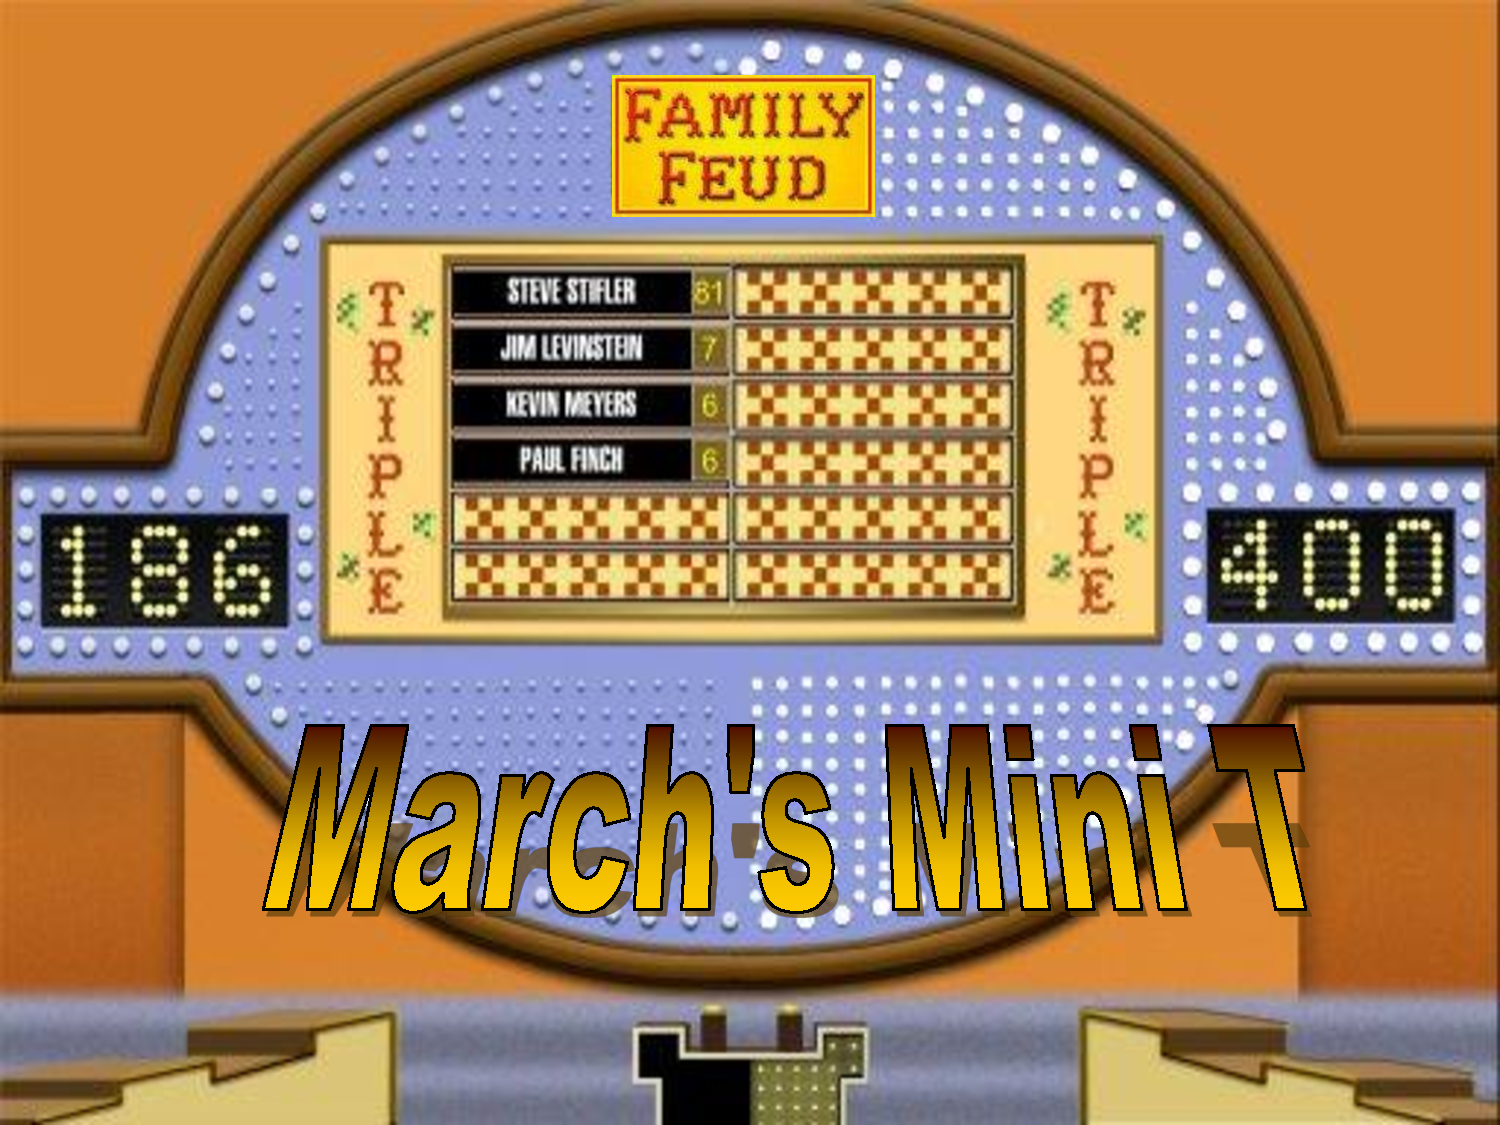 Family feud powerpoint template - classroom game, This family feud ...